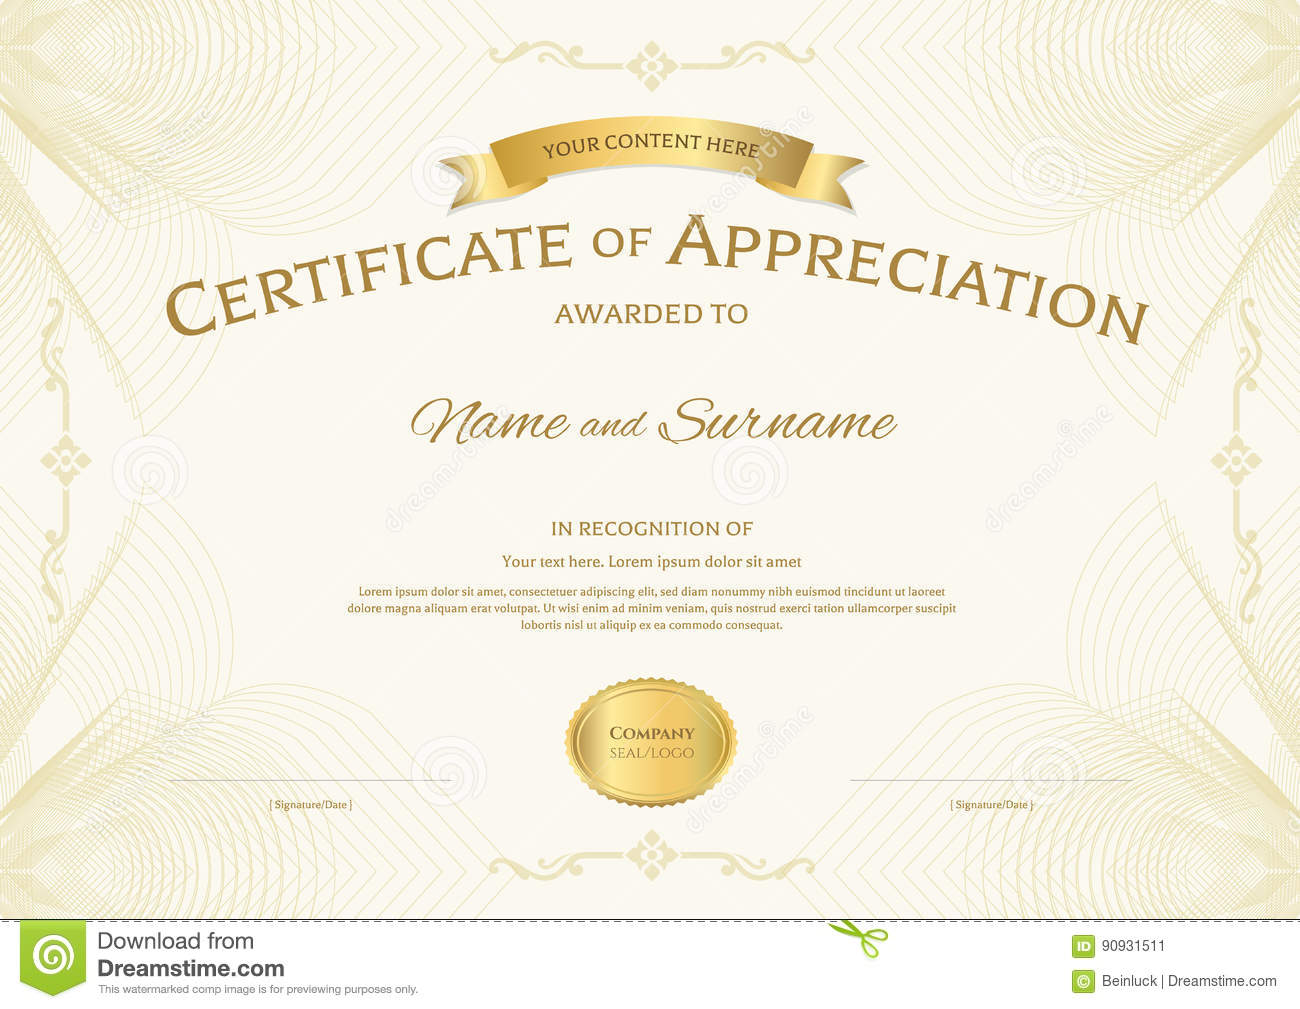 Certificate of appreciation template with award ribbon on abstra certificate of appreciation template with award ribbon on abstra stock image yadclub Images